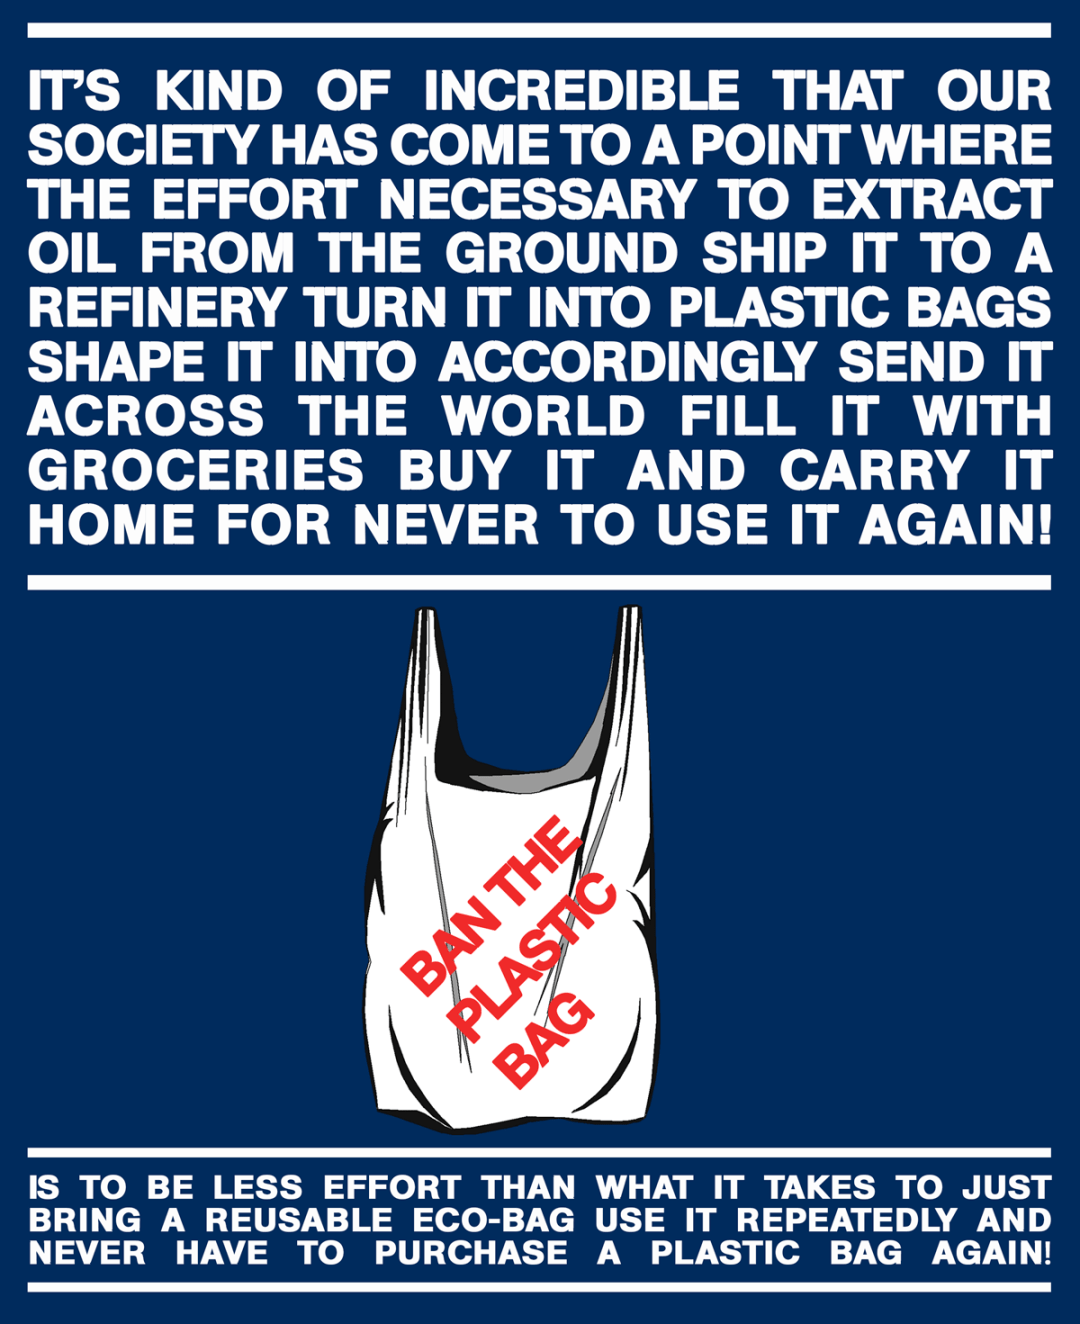 It's kind of incredible that our society has come to a point where the effort necessary to extract oil from the ground. Ship it to a refinery turn it into plastic bags, shape it into accordingly ship it across the world fill it with groceries. Buy it and carry it home for never to use it again! Is to be less effort than what it takes just to bring a reusable eco-bag. Use it repeatedly and never have to purchase a plastic bag again! Ban the plastic bag manifesto. Graphics By Kenneth Buddha Jeans